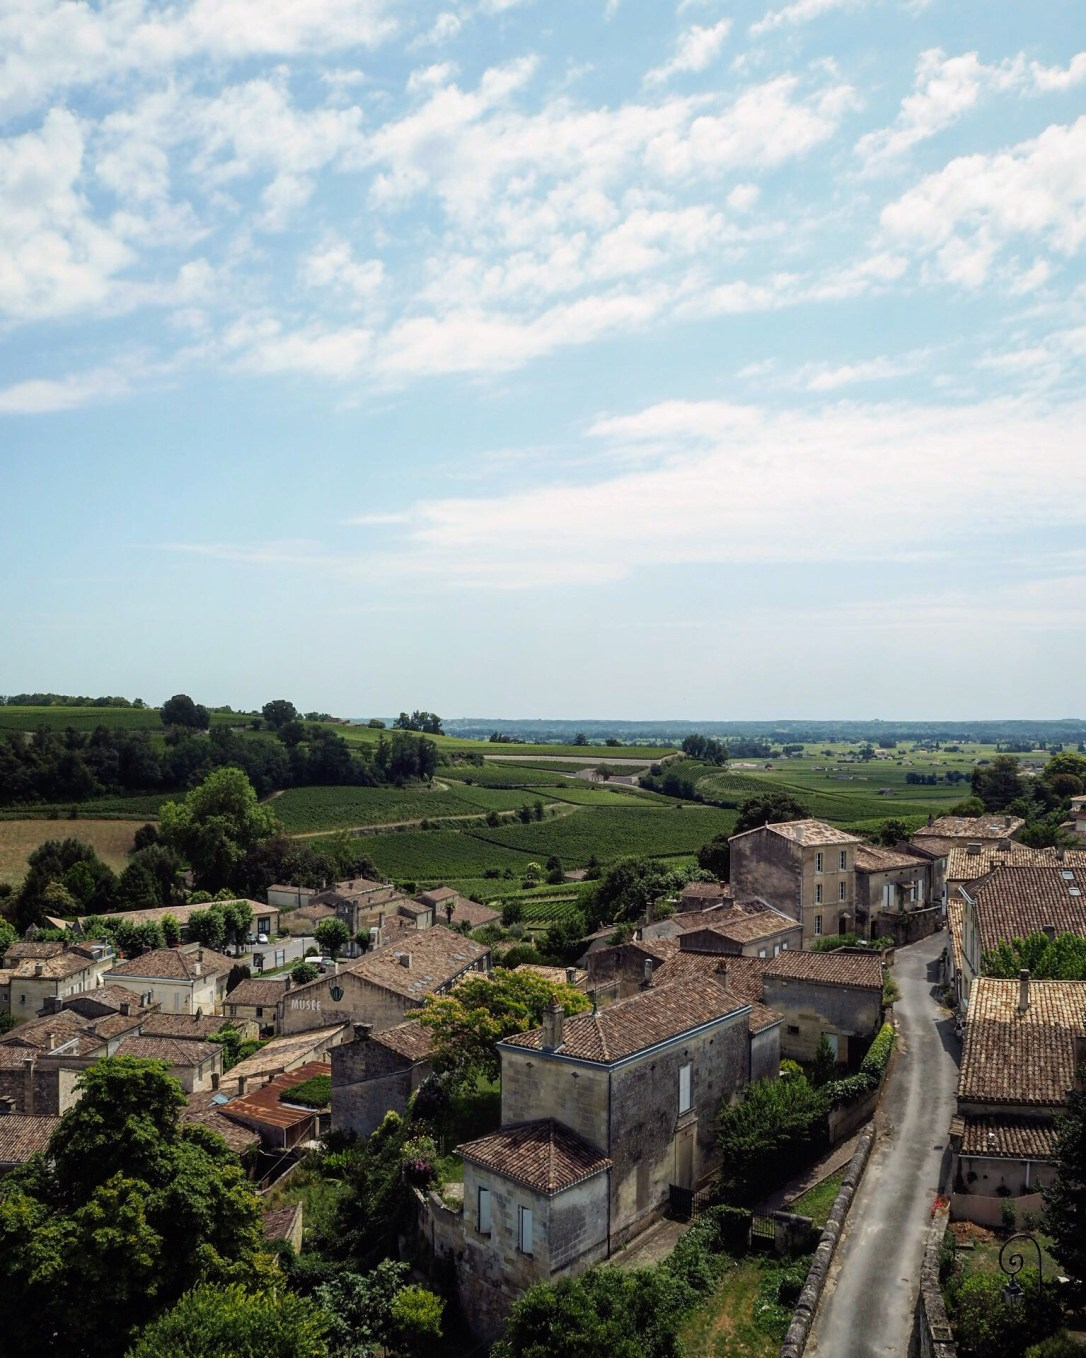 View of the Aquitaine countryside - Bordeaux to St Émilion by train